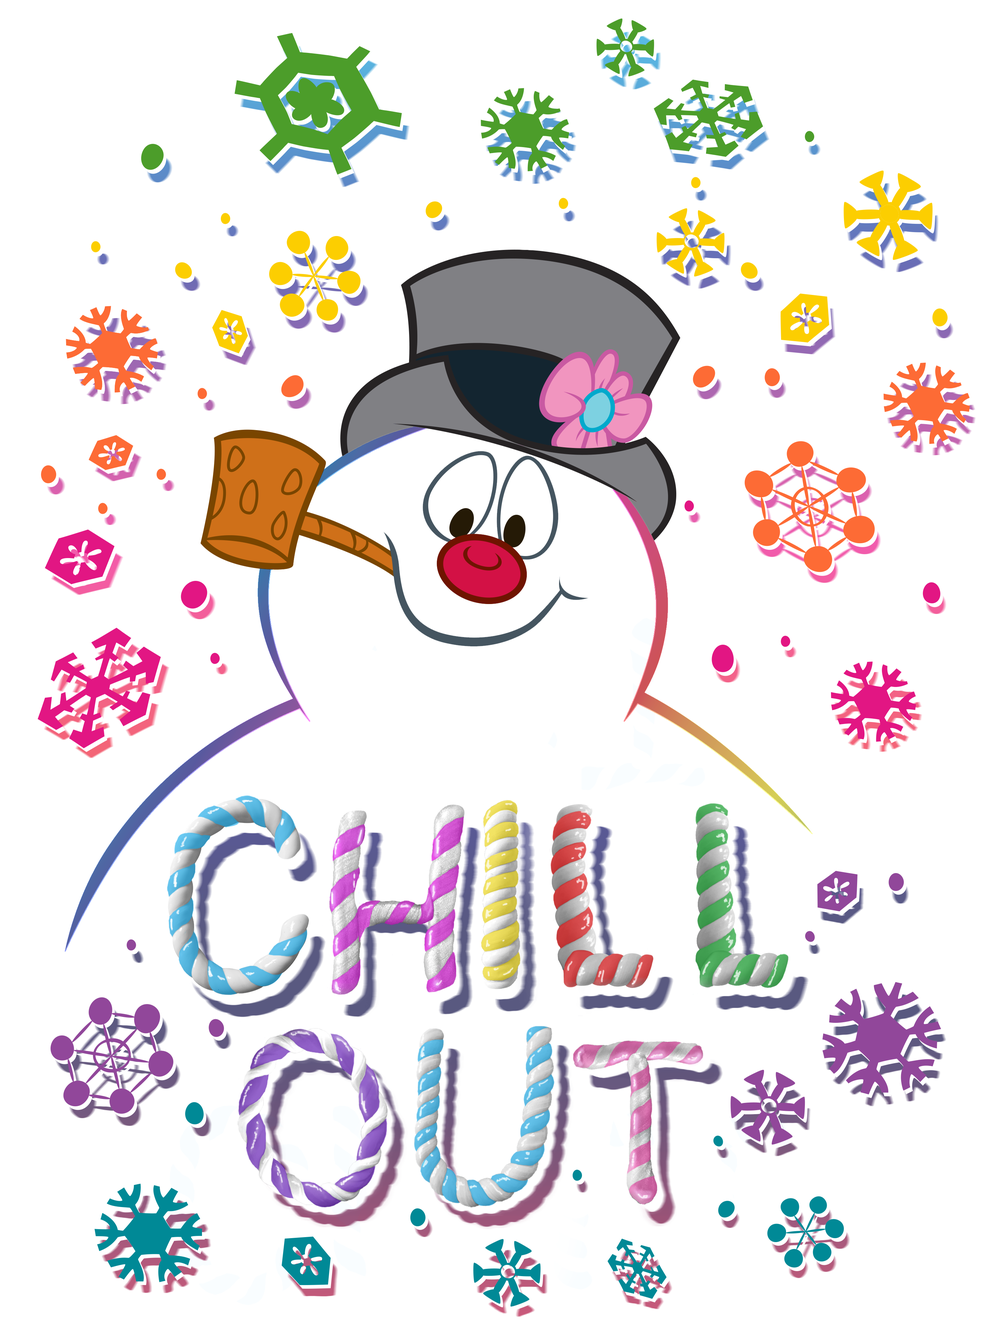 FROSTY_Graphic_02B.png